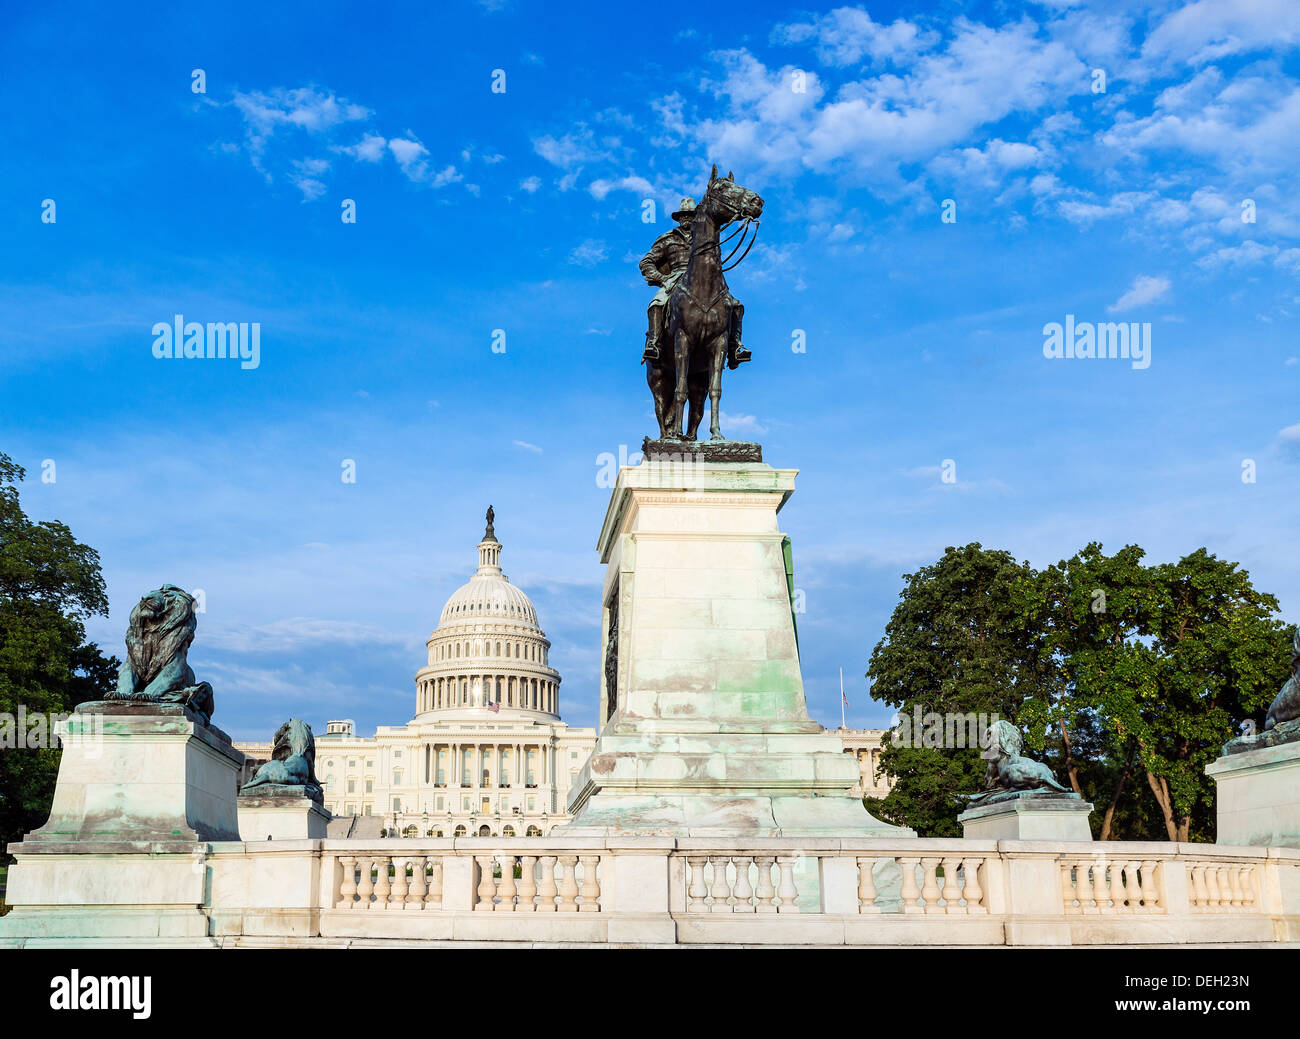 Ulysses S. Grant Memorial and US Capitol Building, Washington D.C., USA - Stock Image